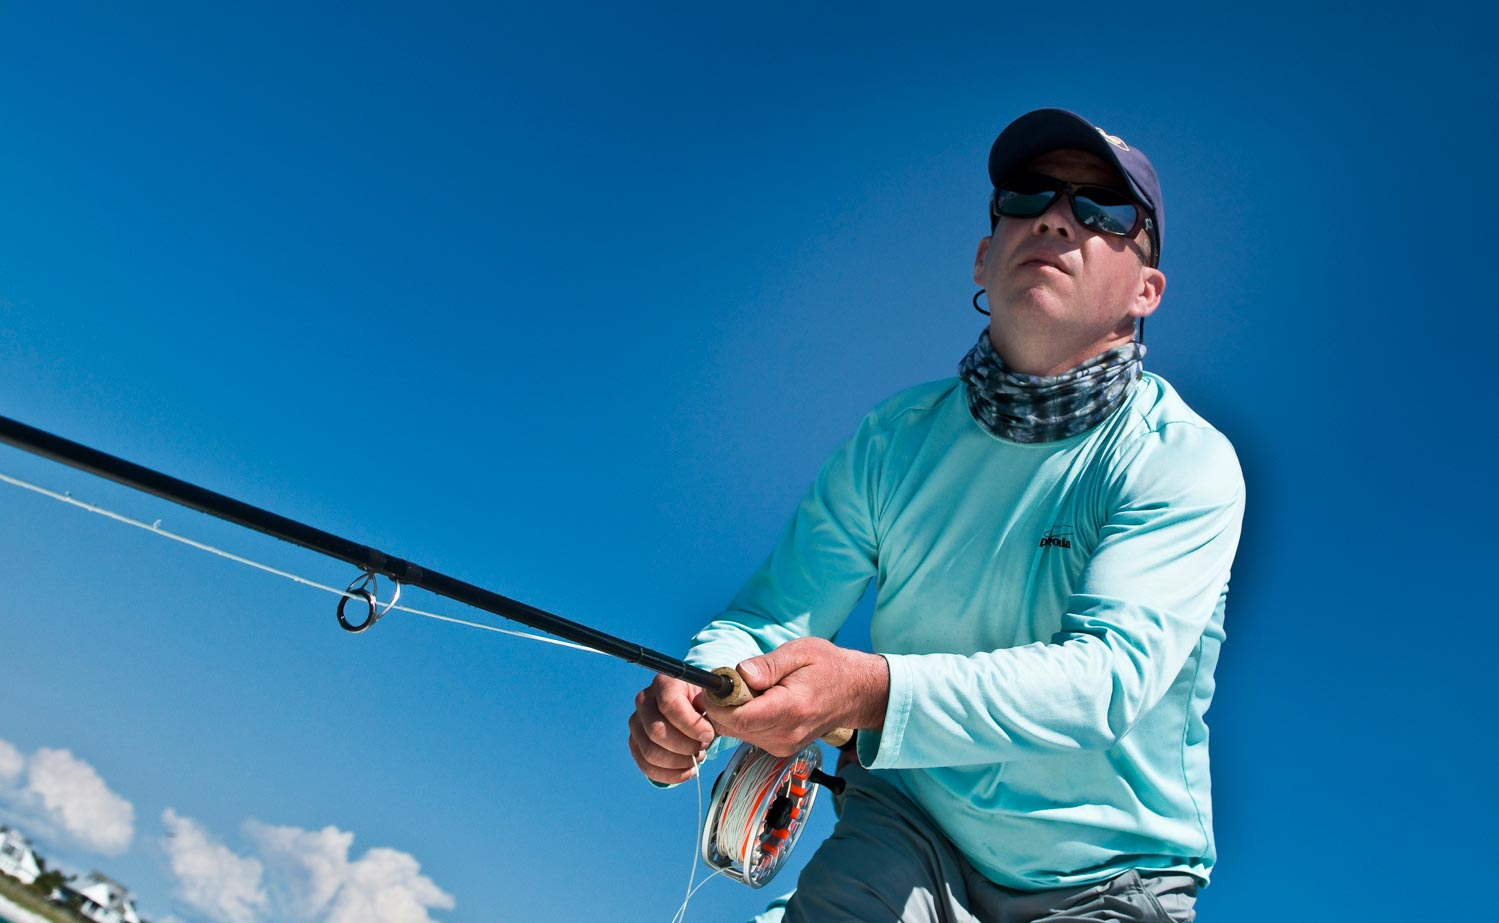 Focus and determination make it happen fly fishing for Fly fishing 101